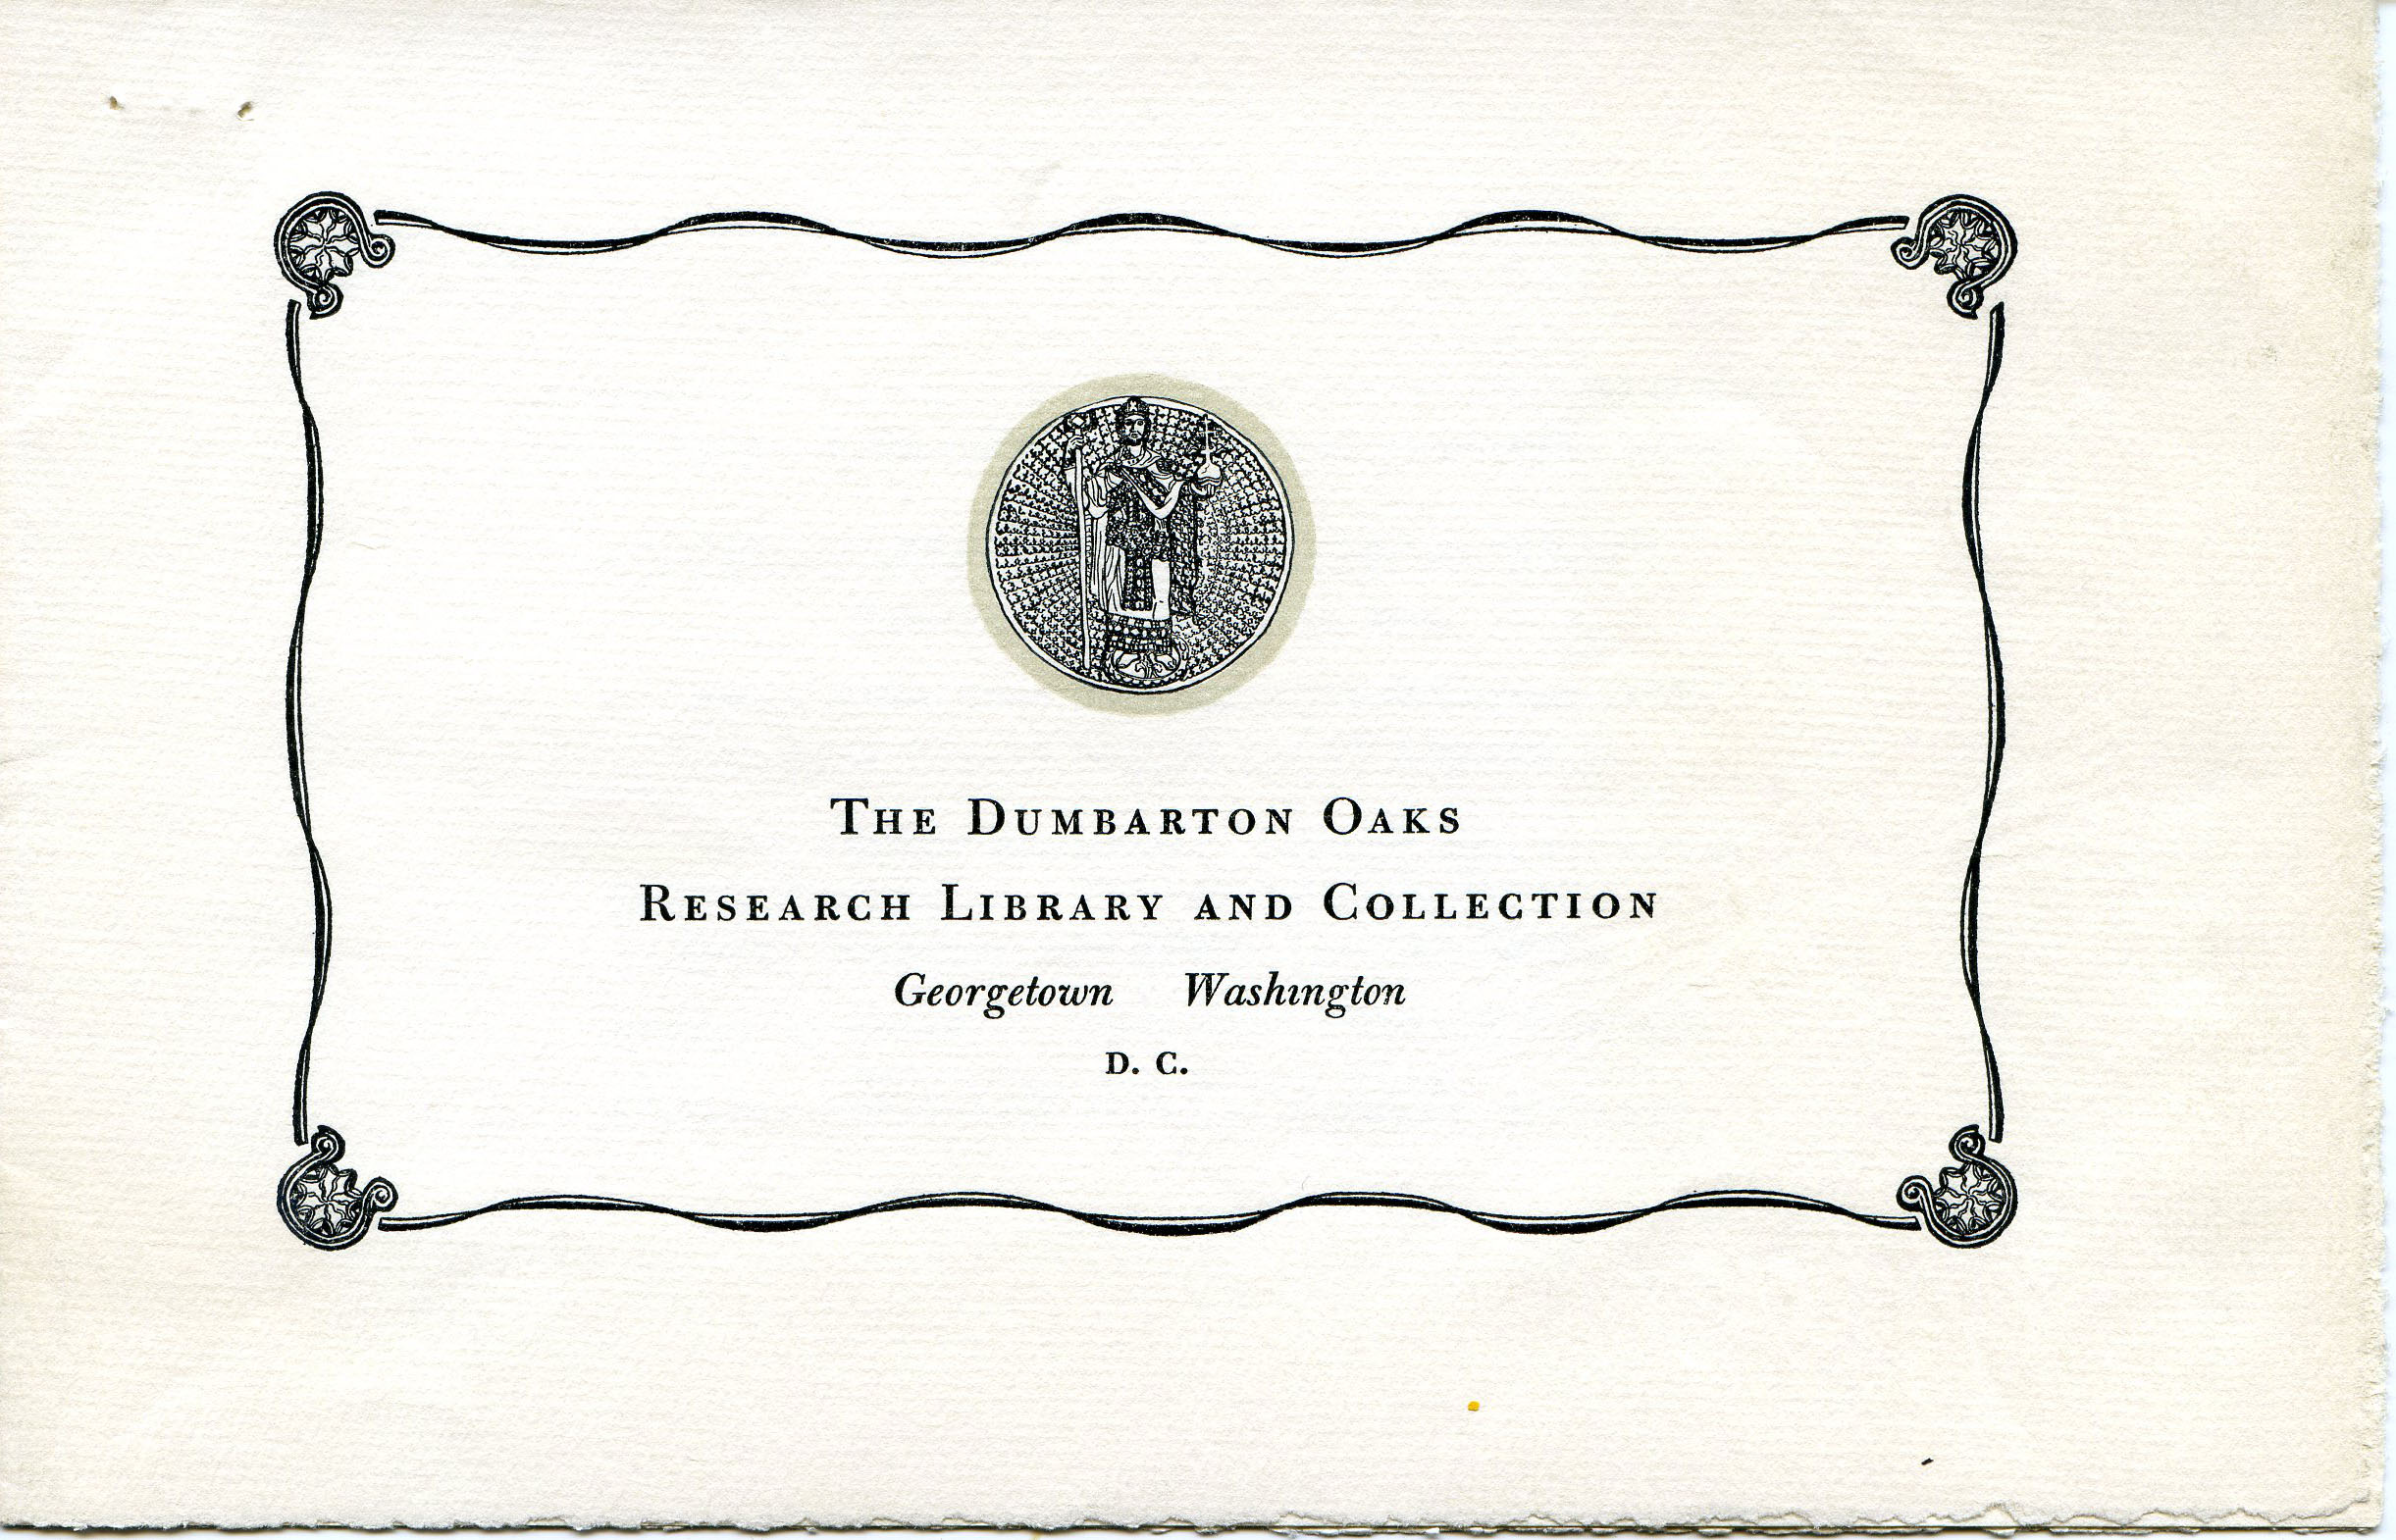 Invitation to Inaugural Lectures, November 2-3, 1940 (Dumbarton Oaks Archives)